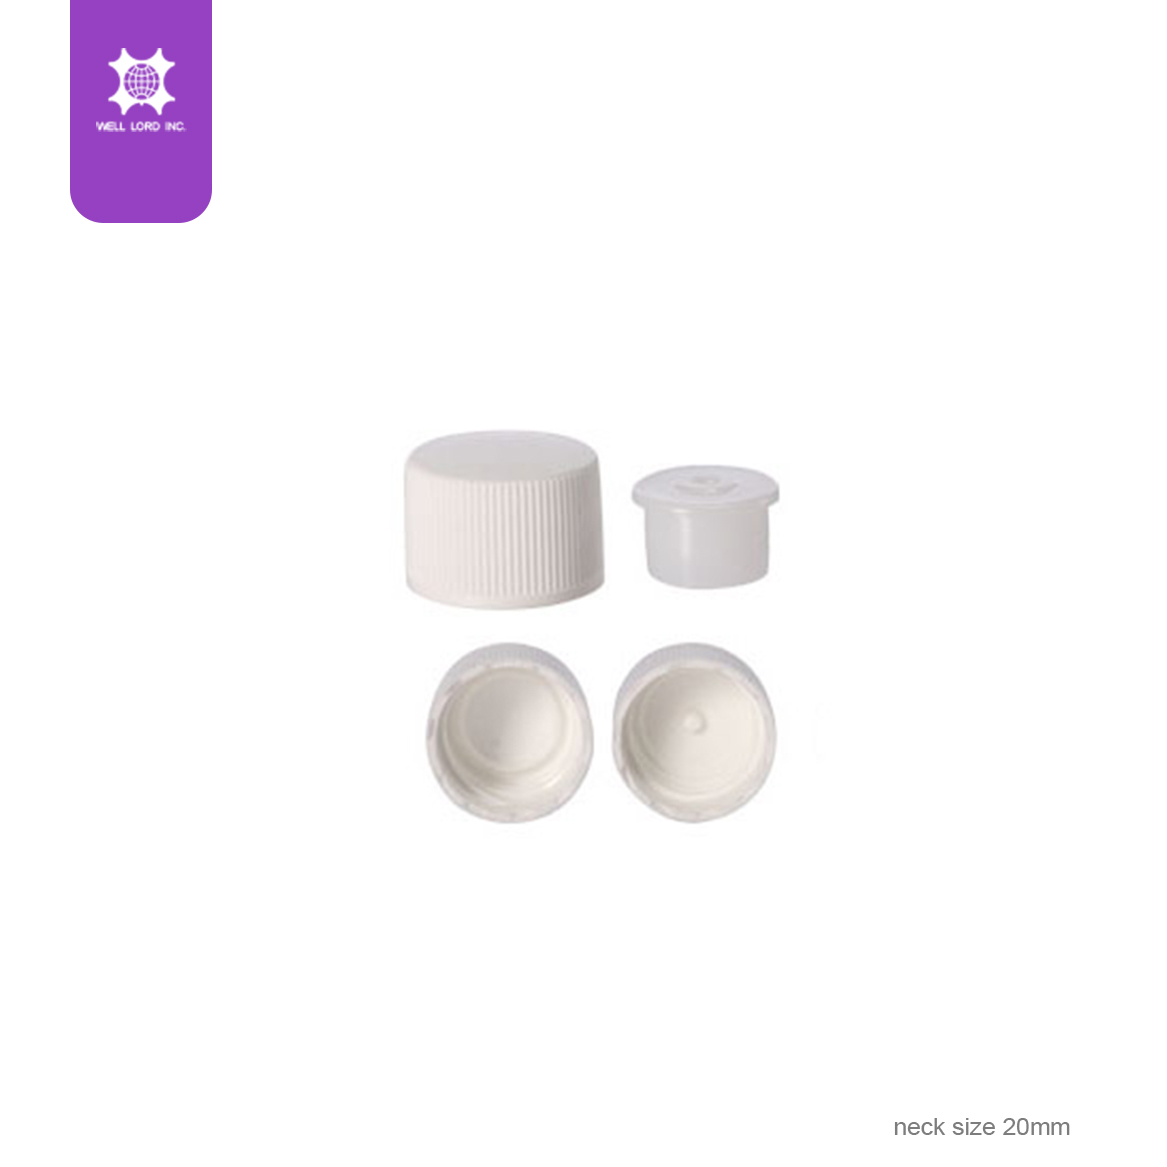 18mm white plastic cap with child hood proof screw cap